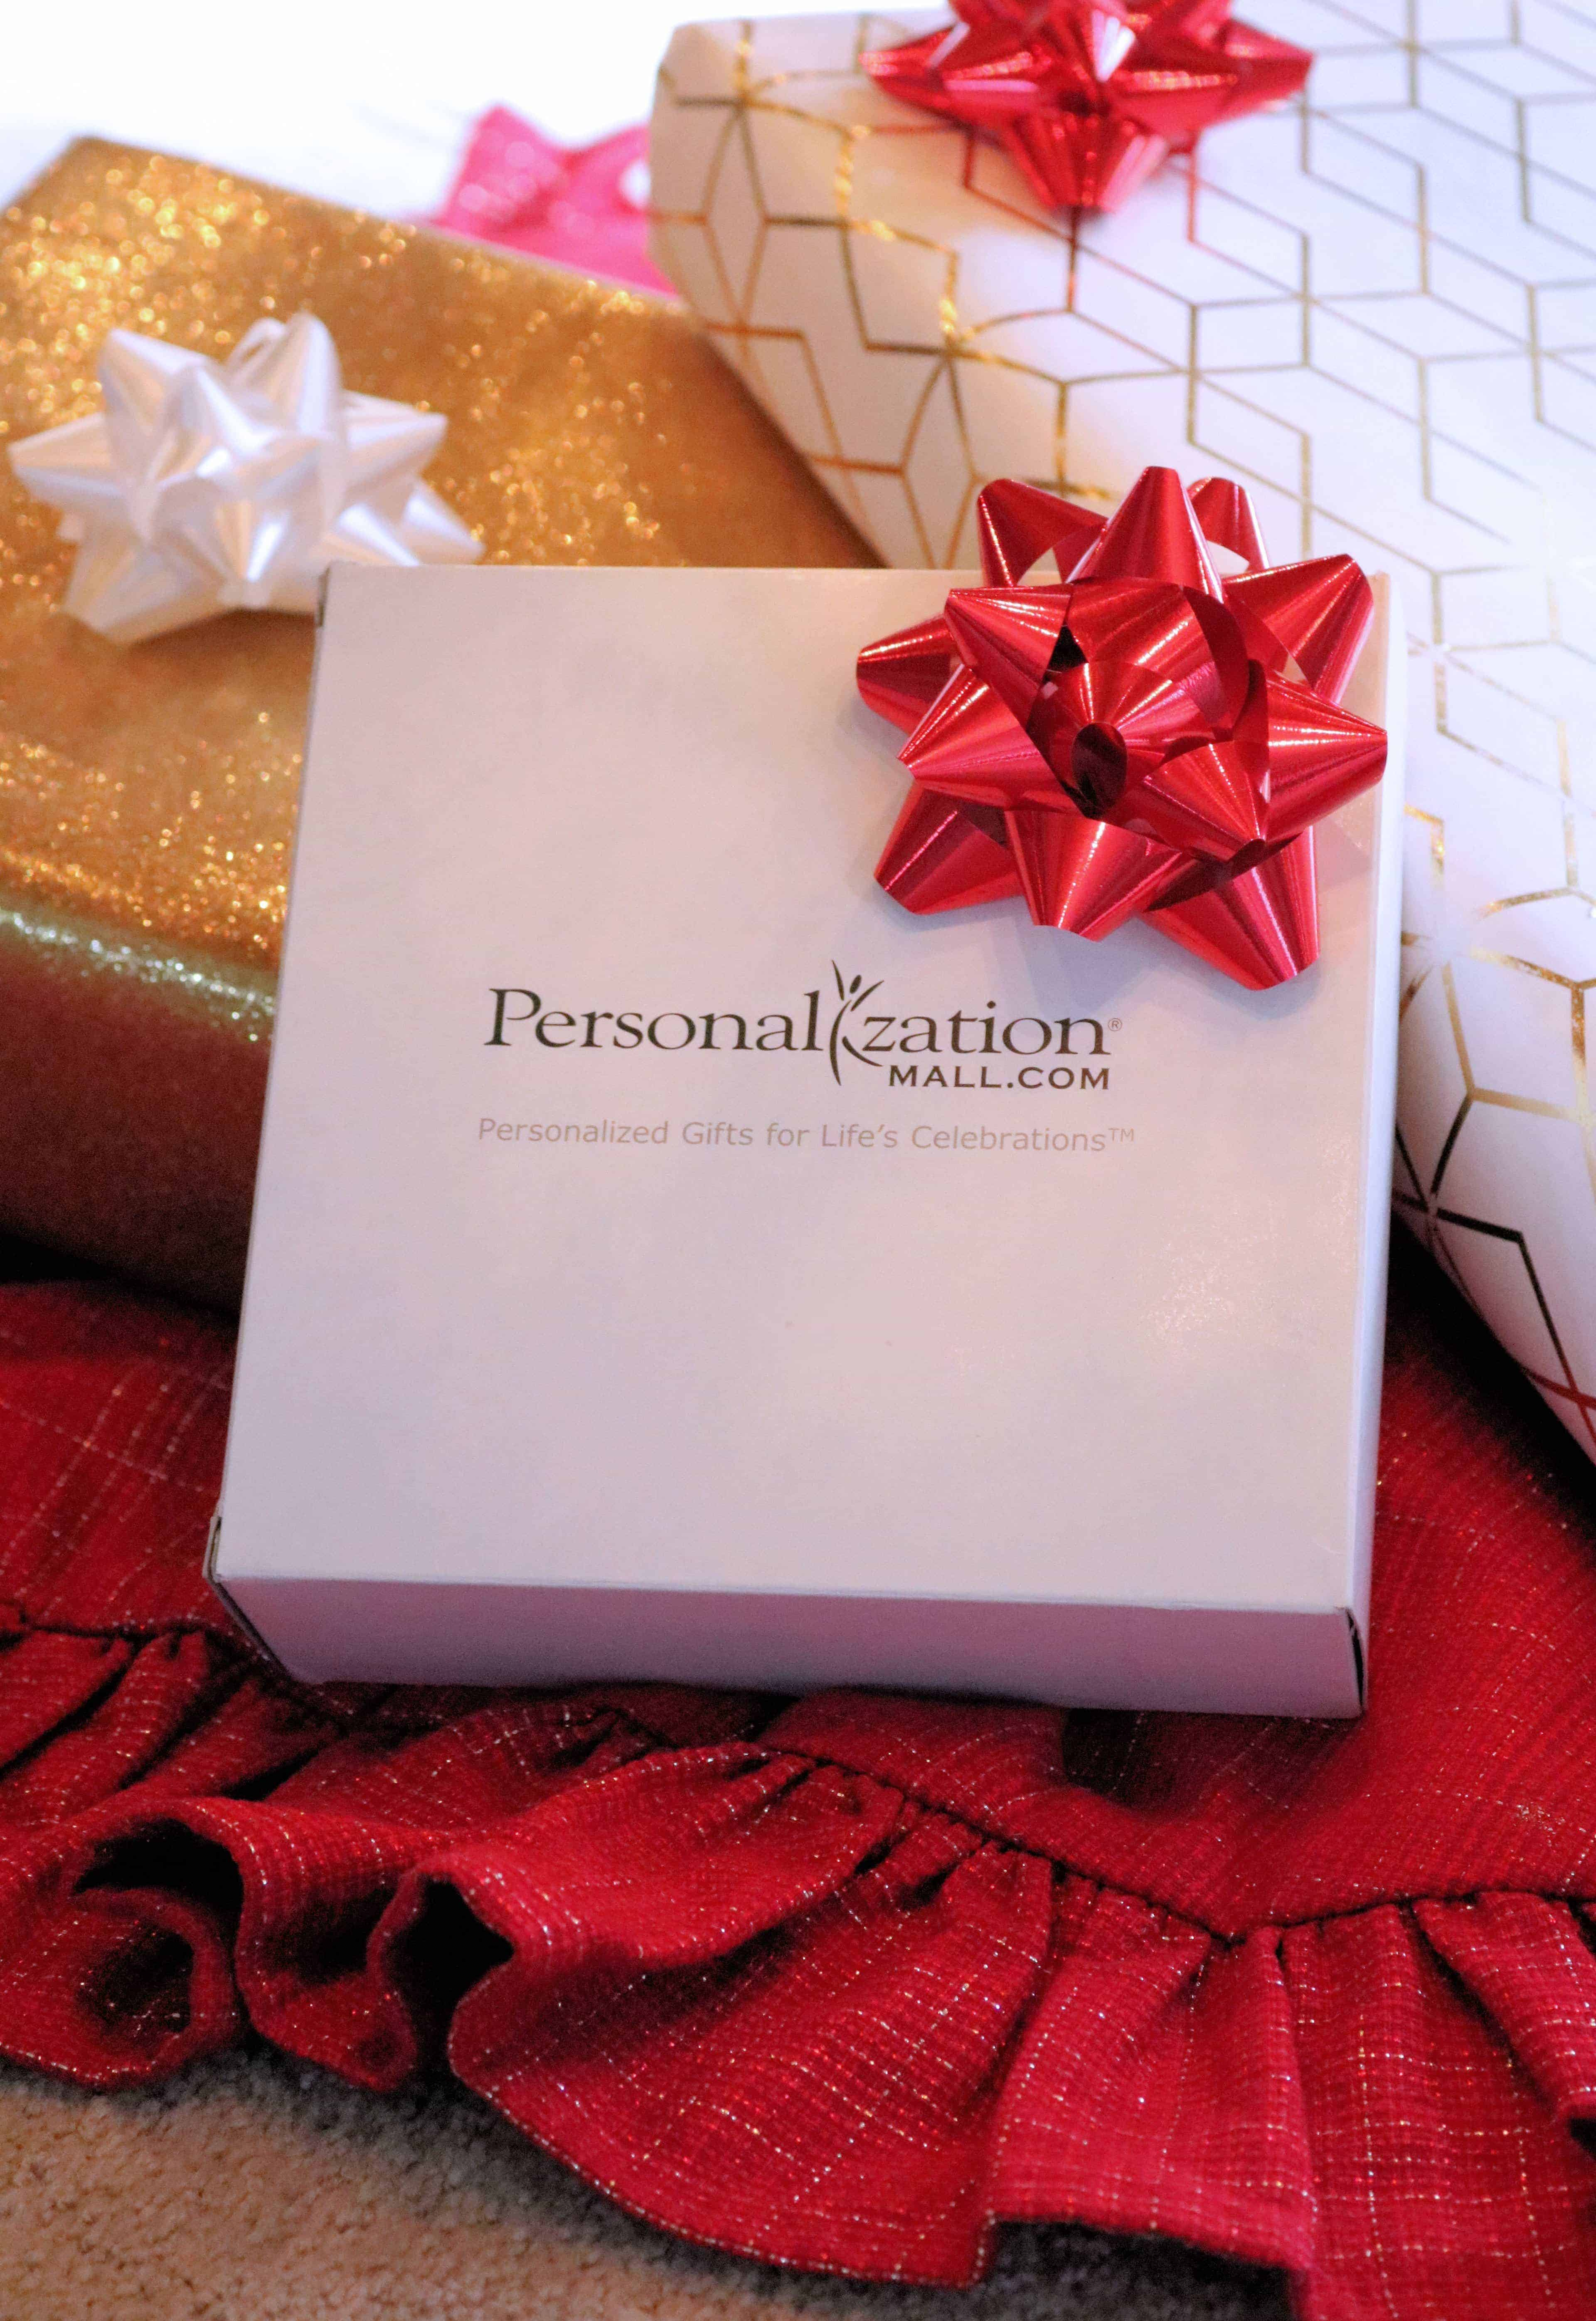 Personalized Christmas gifts are great for everyone on your list! Check out my roundup of personalized Christmas gifts for him, her, grandparents, and kids! #sponsored #personalizationmall